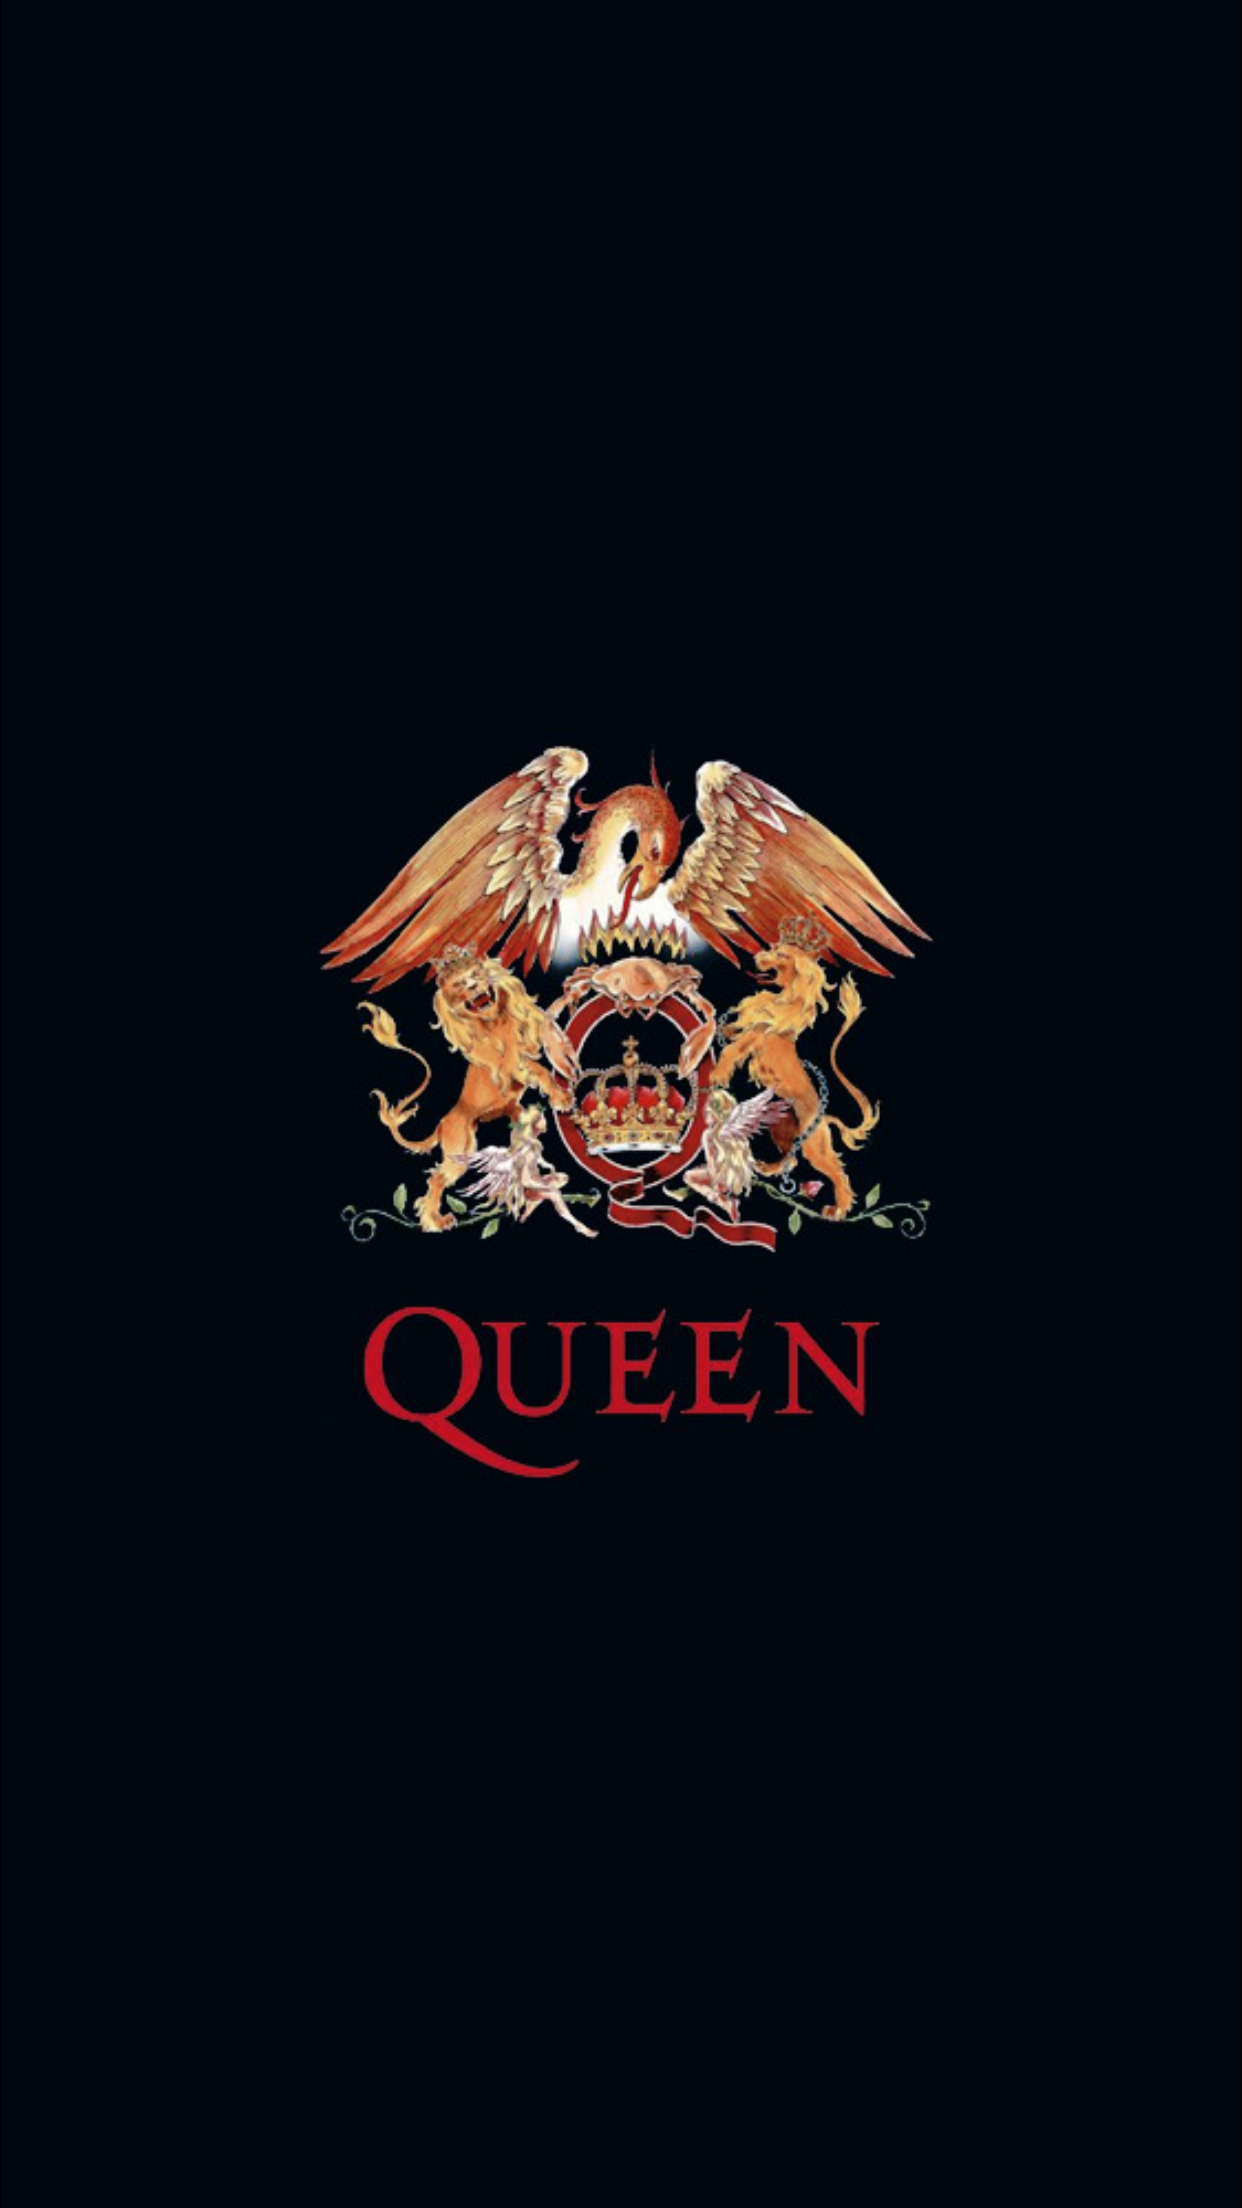 wallpapers image by stef🥀 Queen albums, Queen band